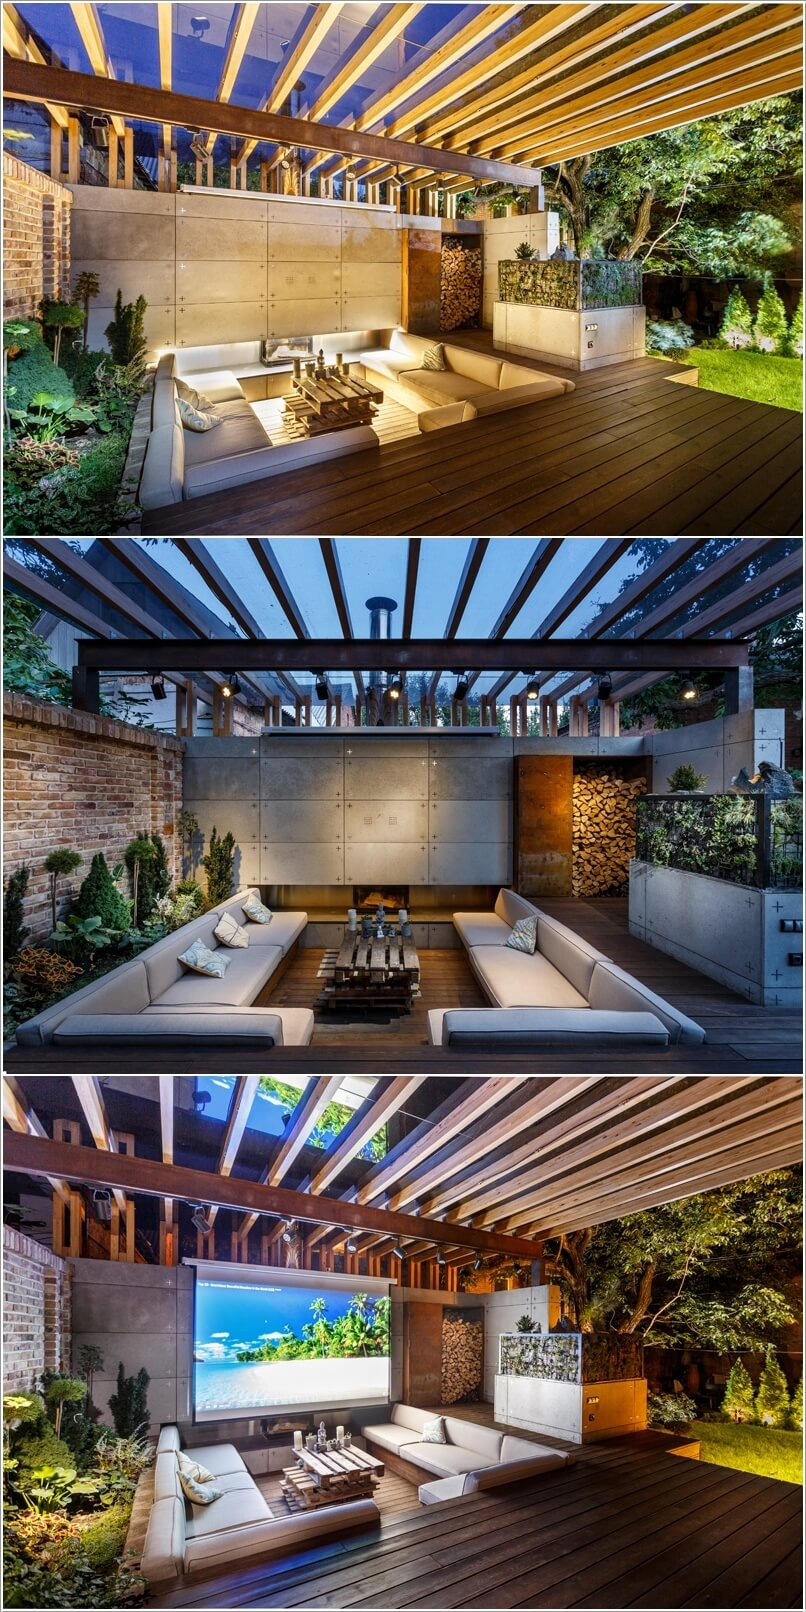 15-cool-ways-to-design-an-outdoor-lounge-5